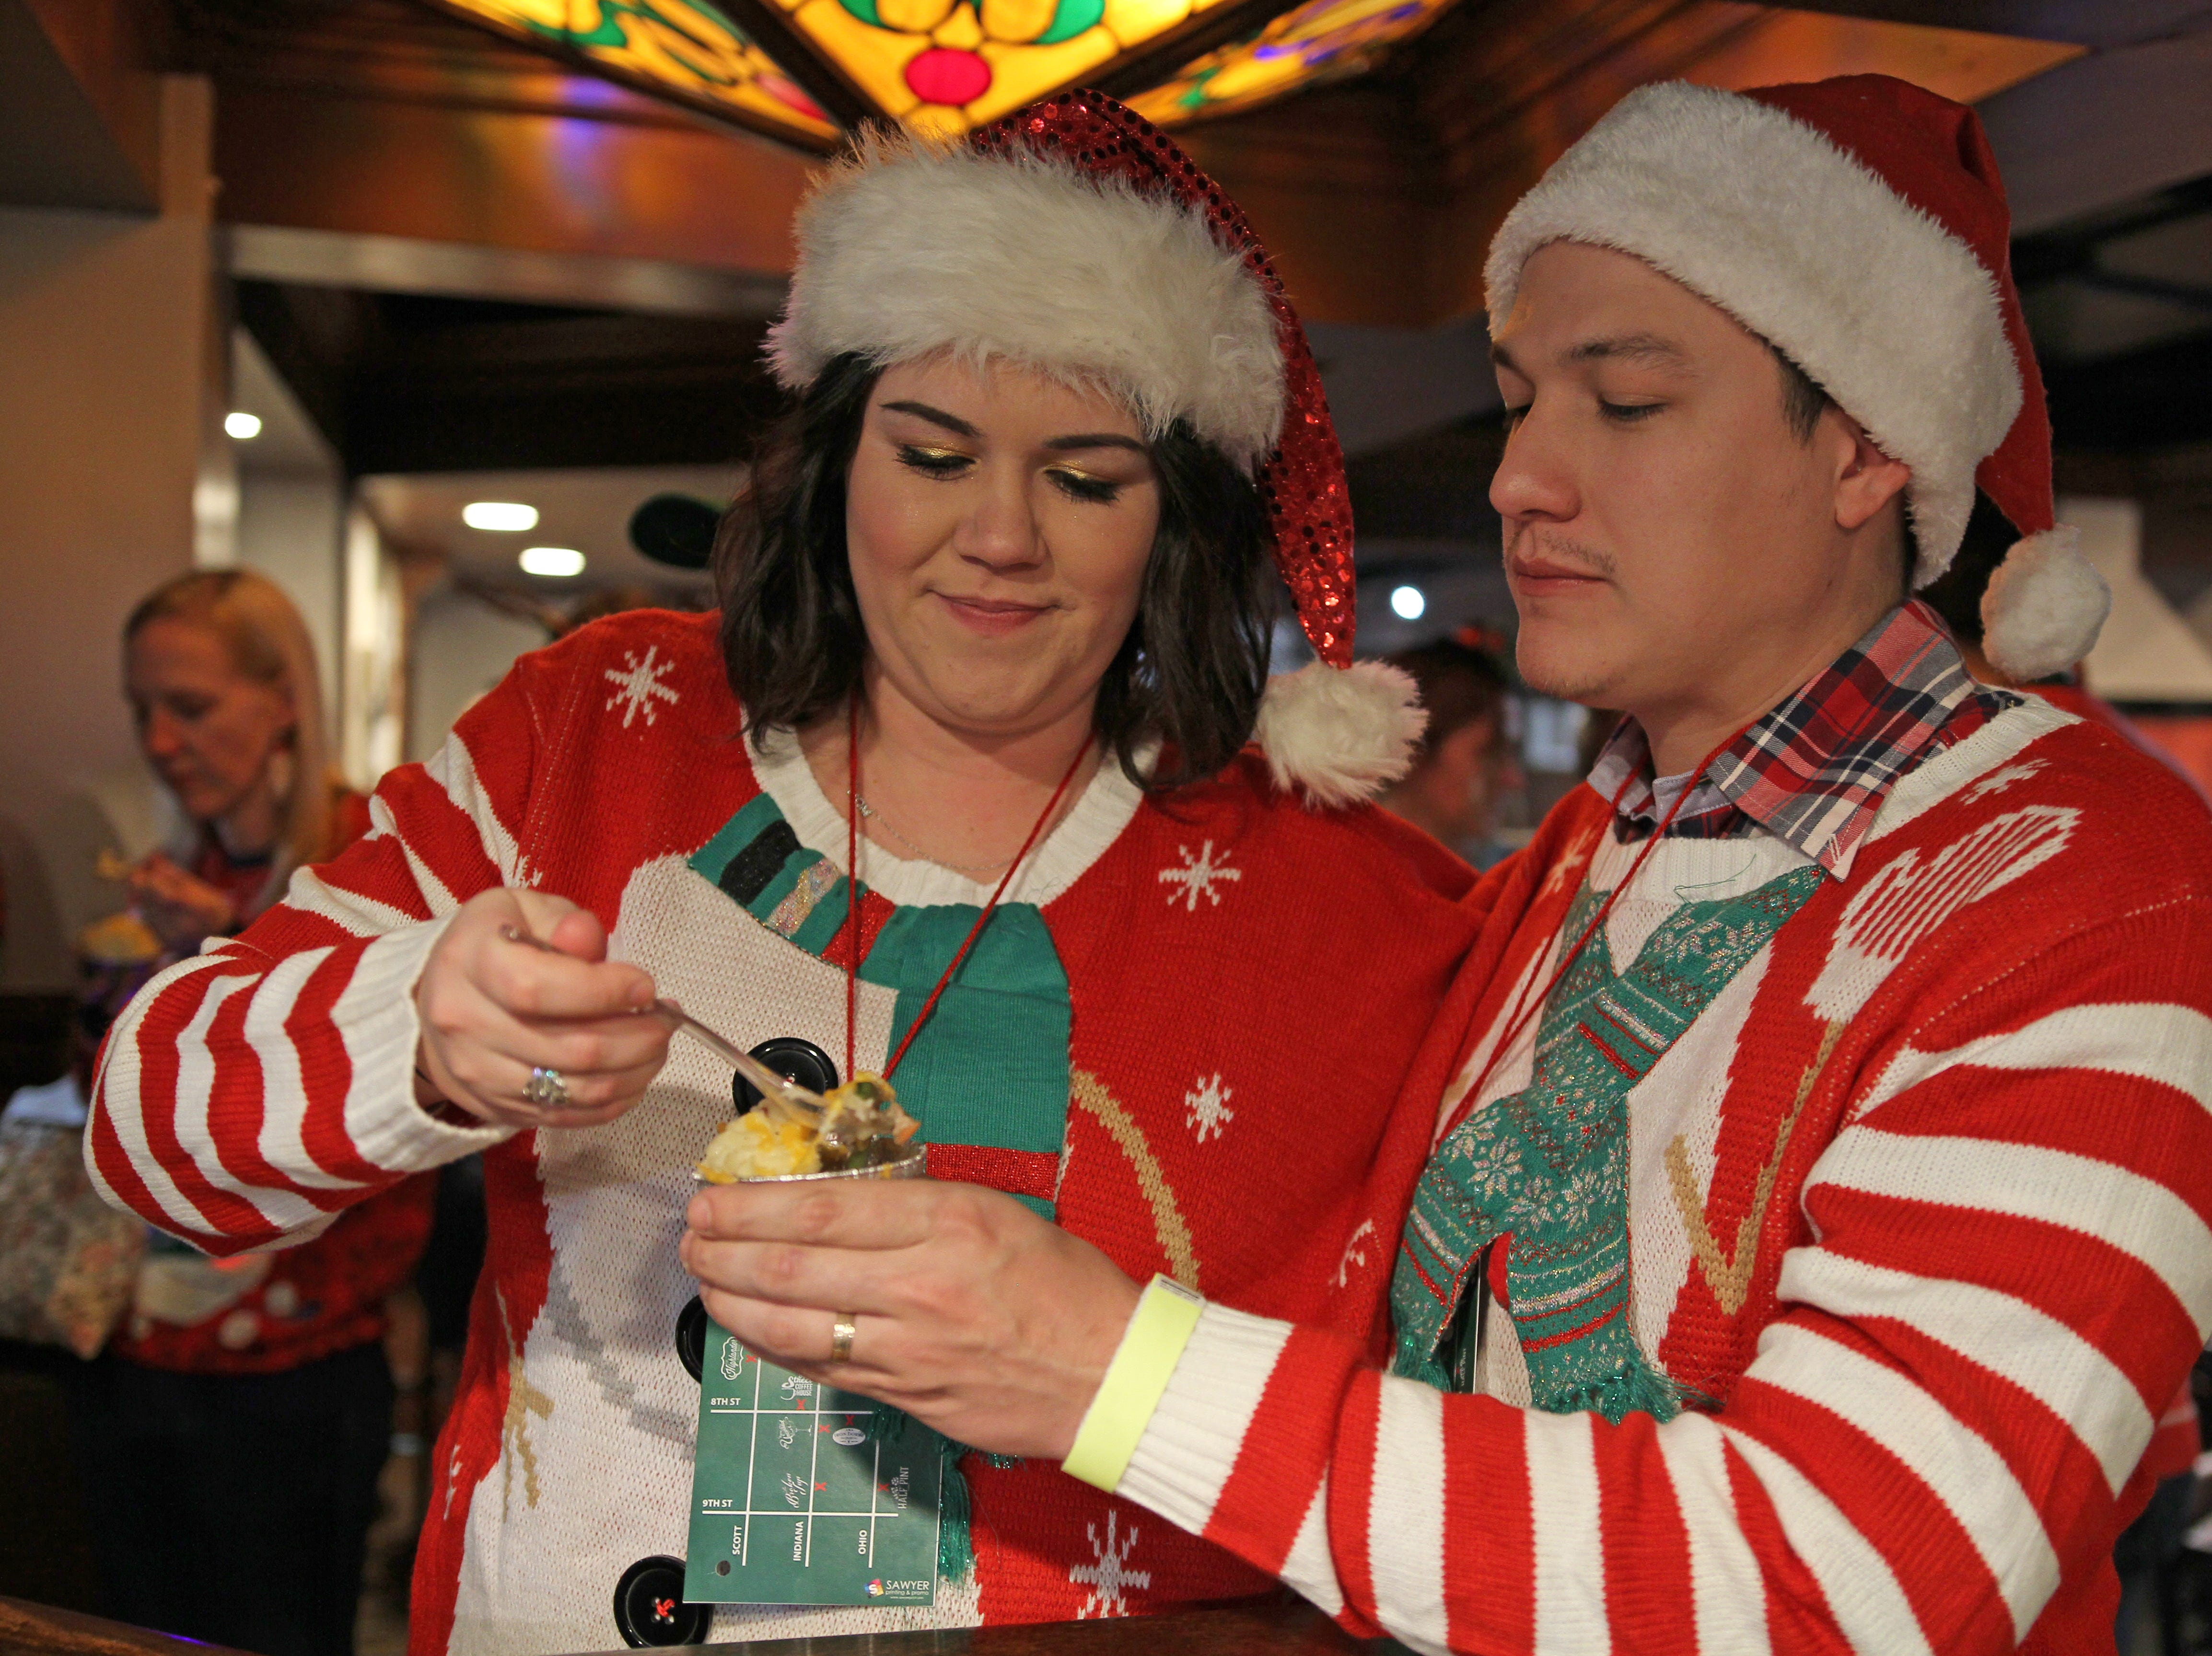 Tori and Chris Sosa eat at their first stop on Rudolph's First Ugly Sweater Crawl Saturday, Dec. 1, 2018, in the Highlander.